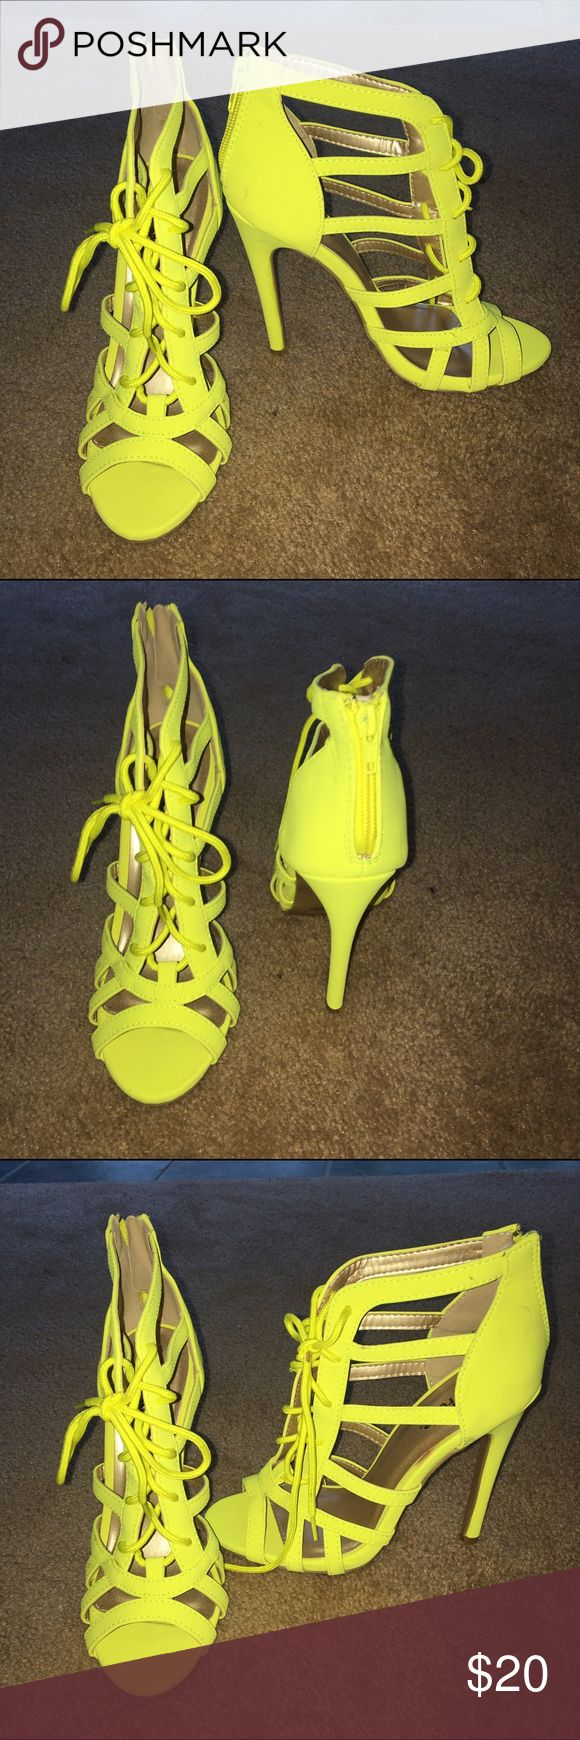 Neon yellow Heels Neon yellow strappy heels. Can be adjusted to your foot ****Never worn***** Shoes Heels